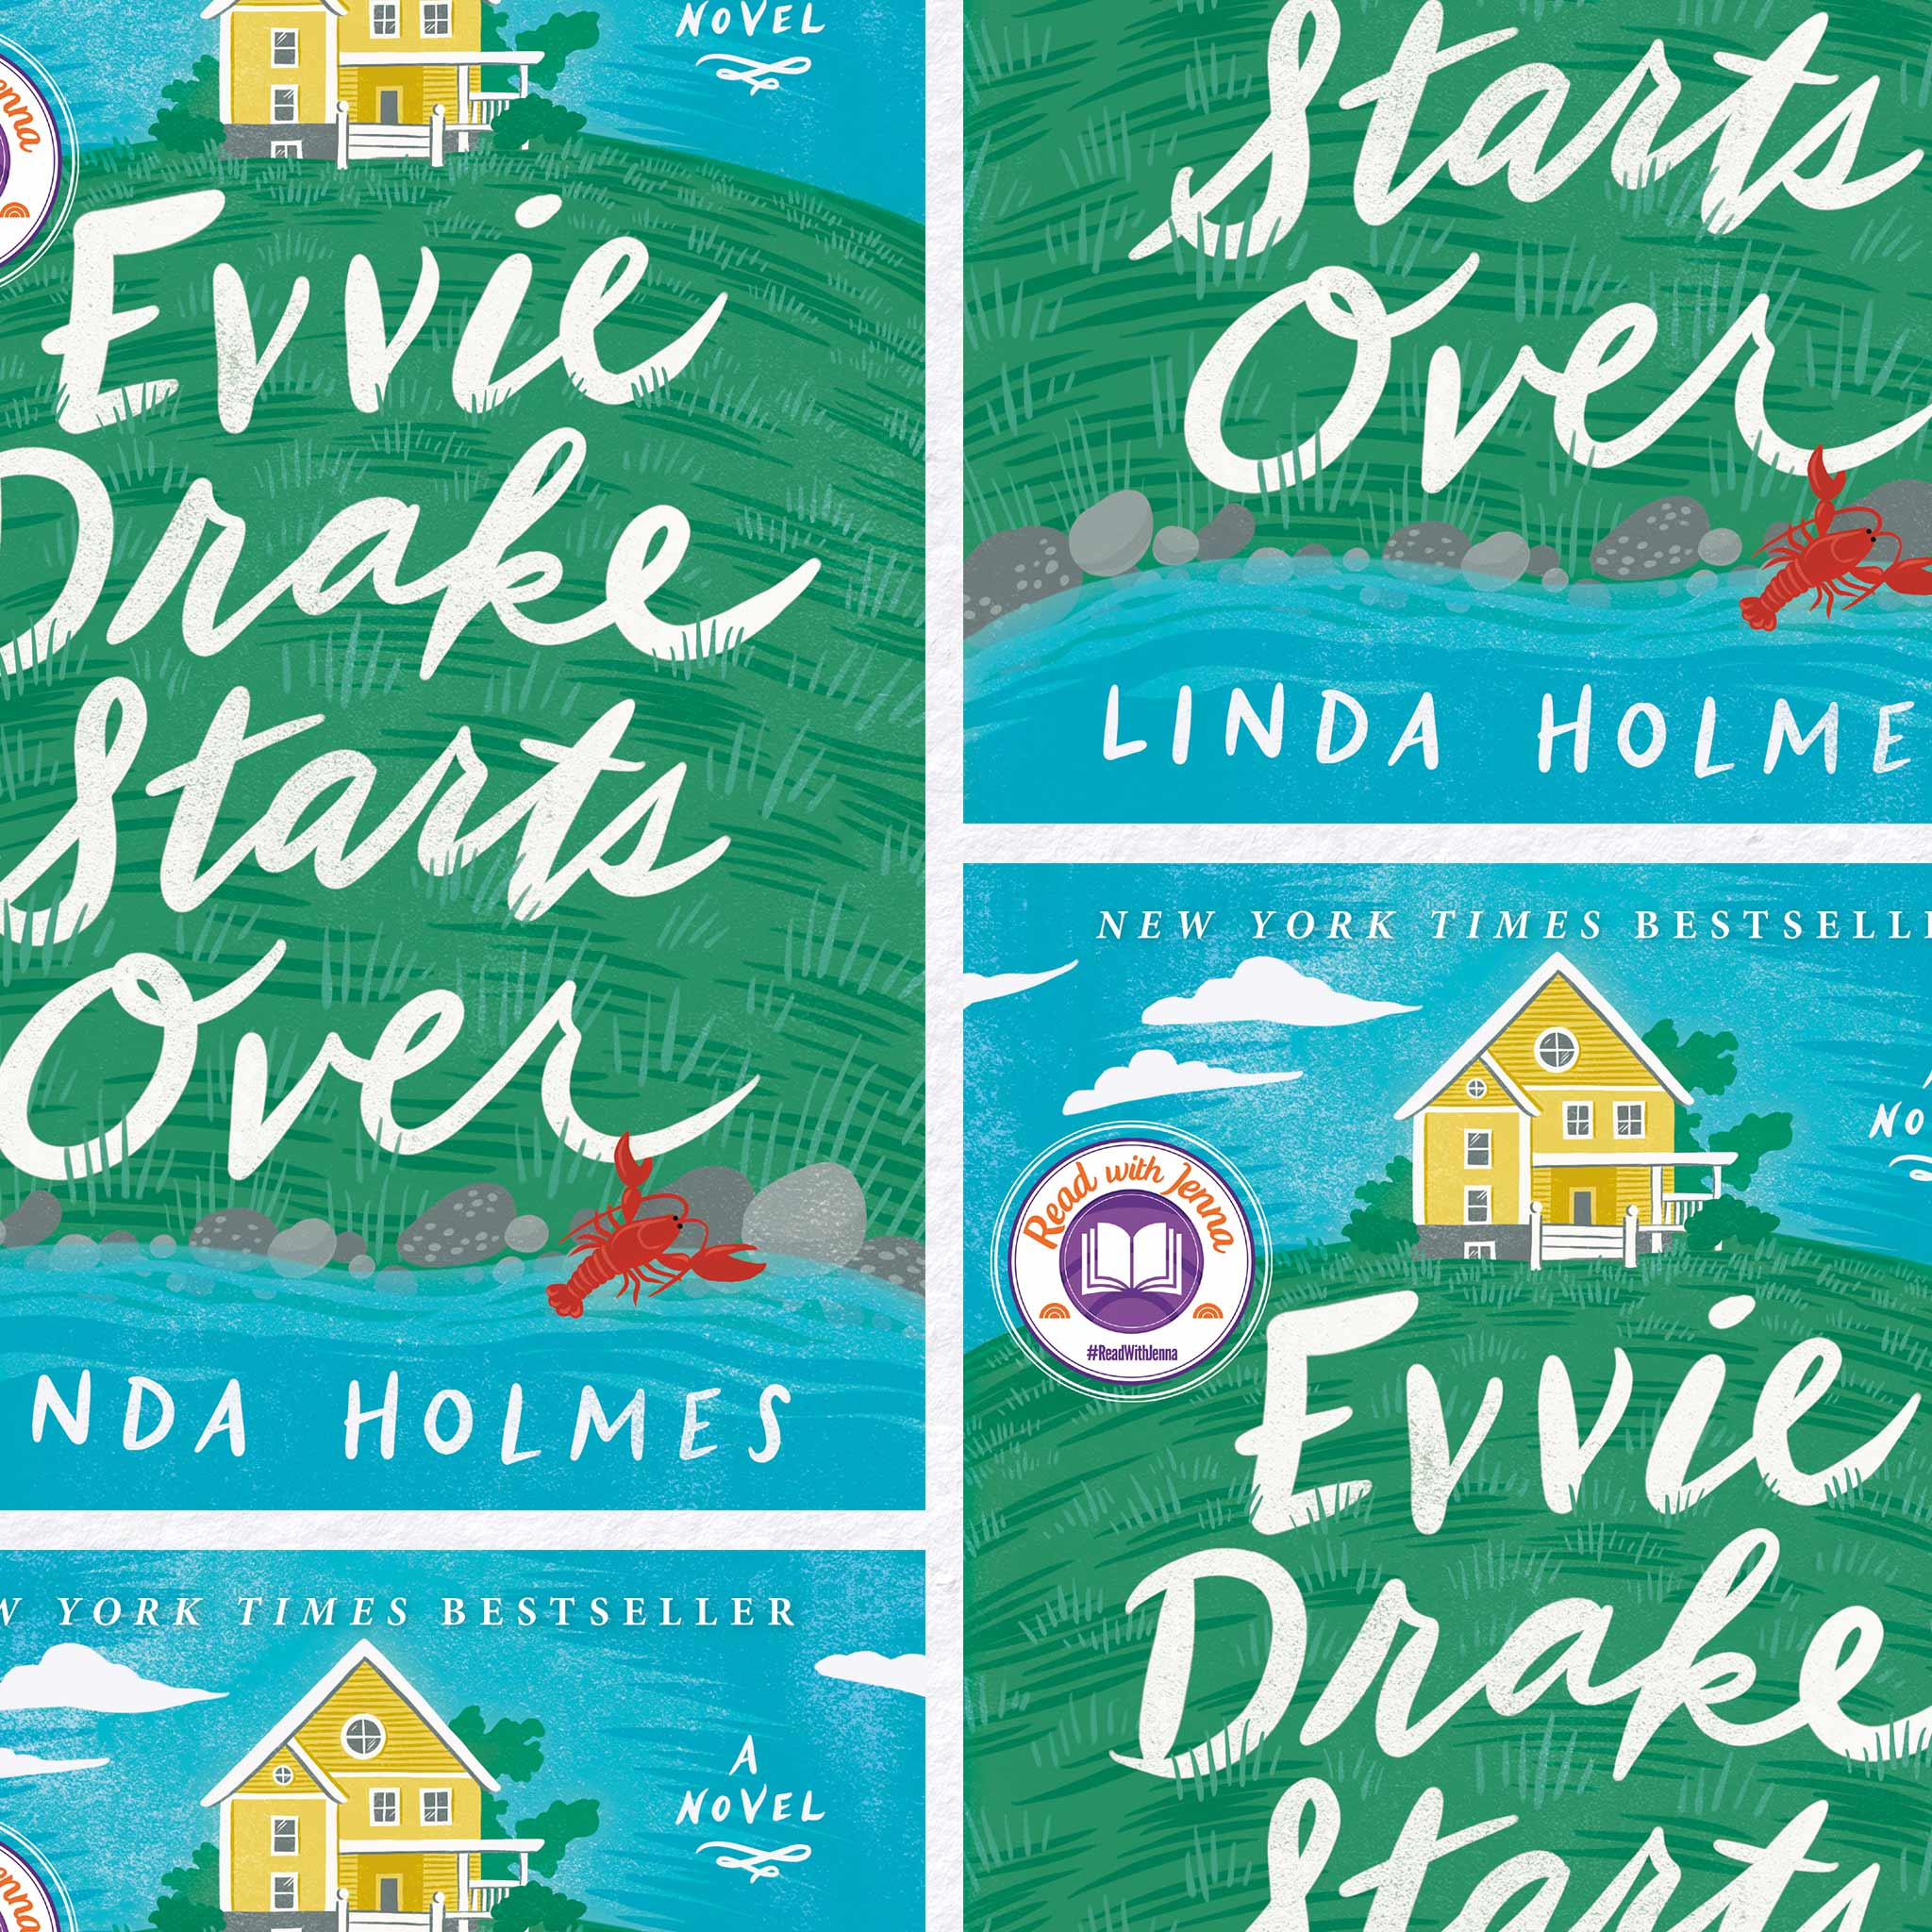 Q&A with Linda Holmes, Author of Evvie Drake Starts Over